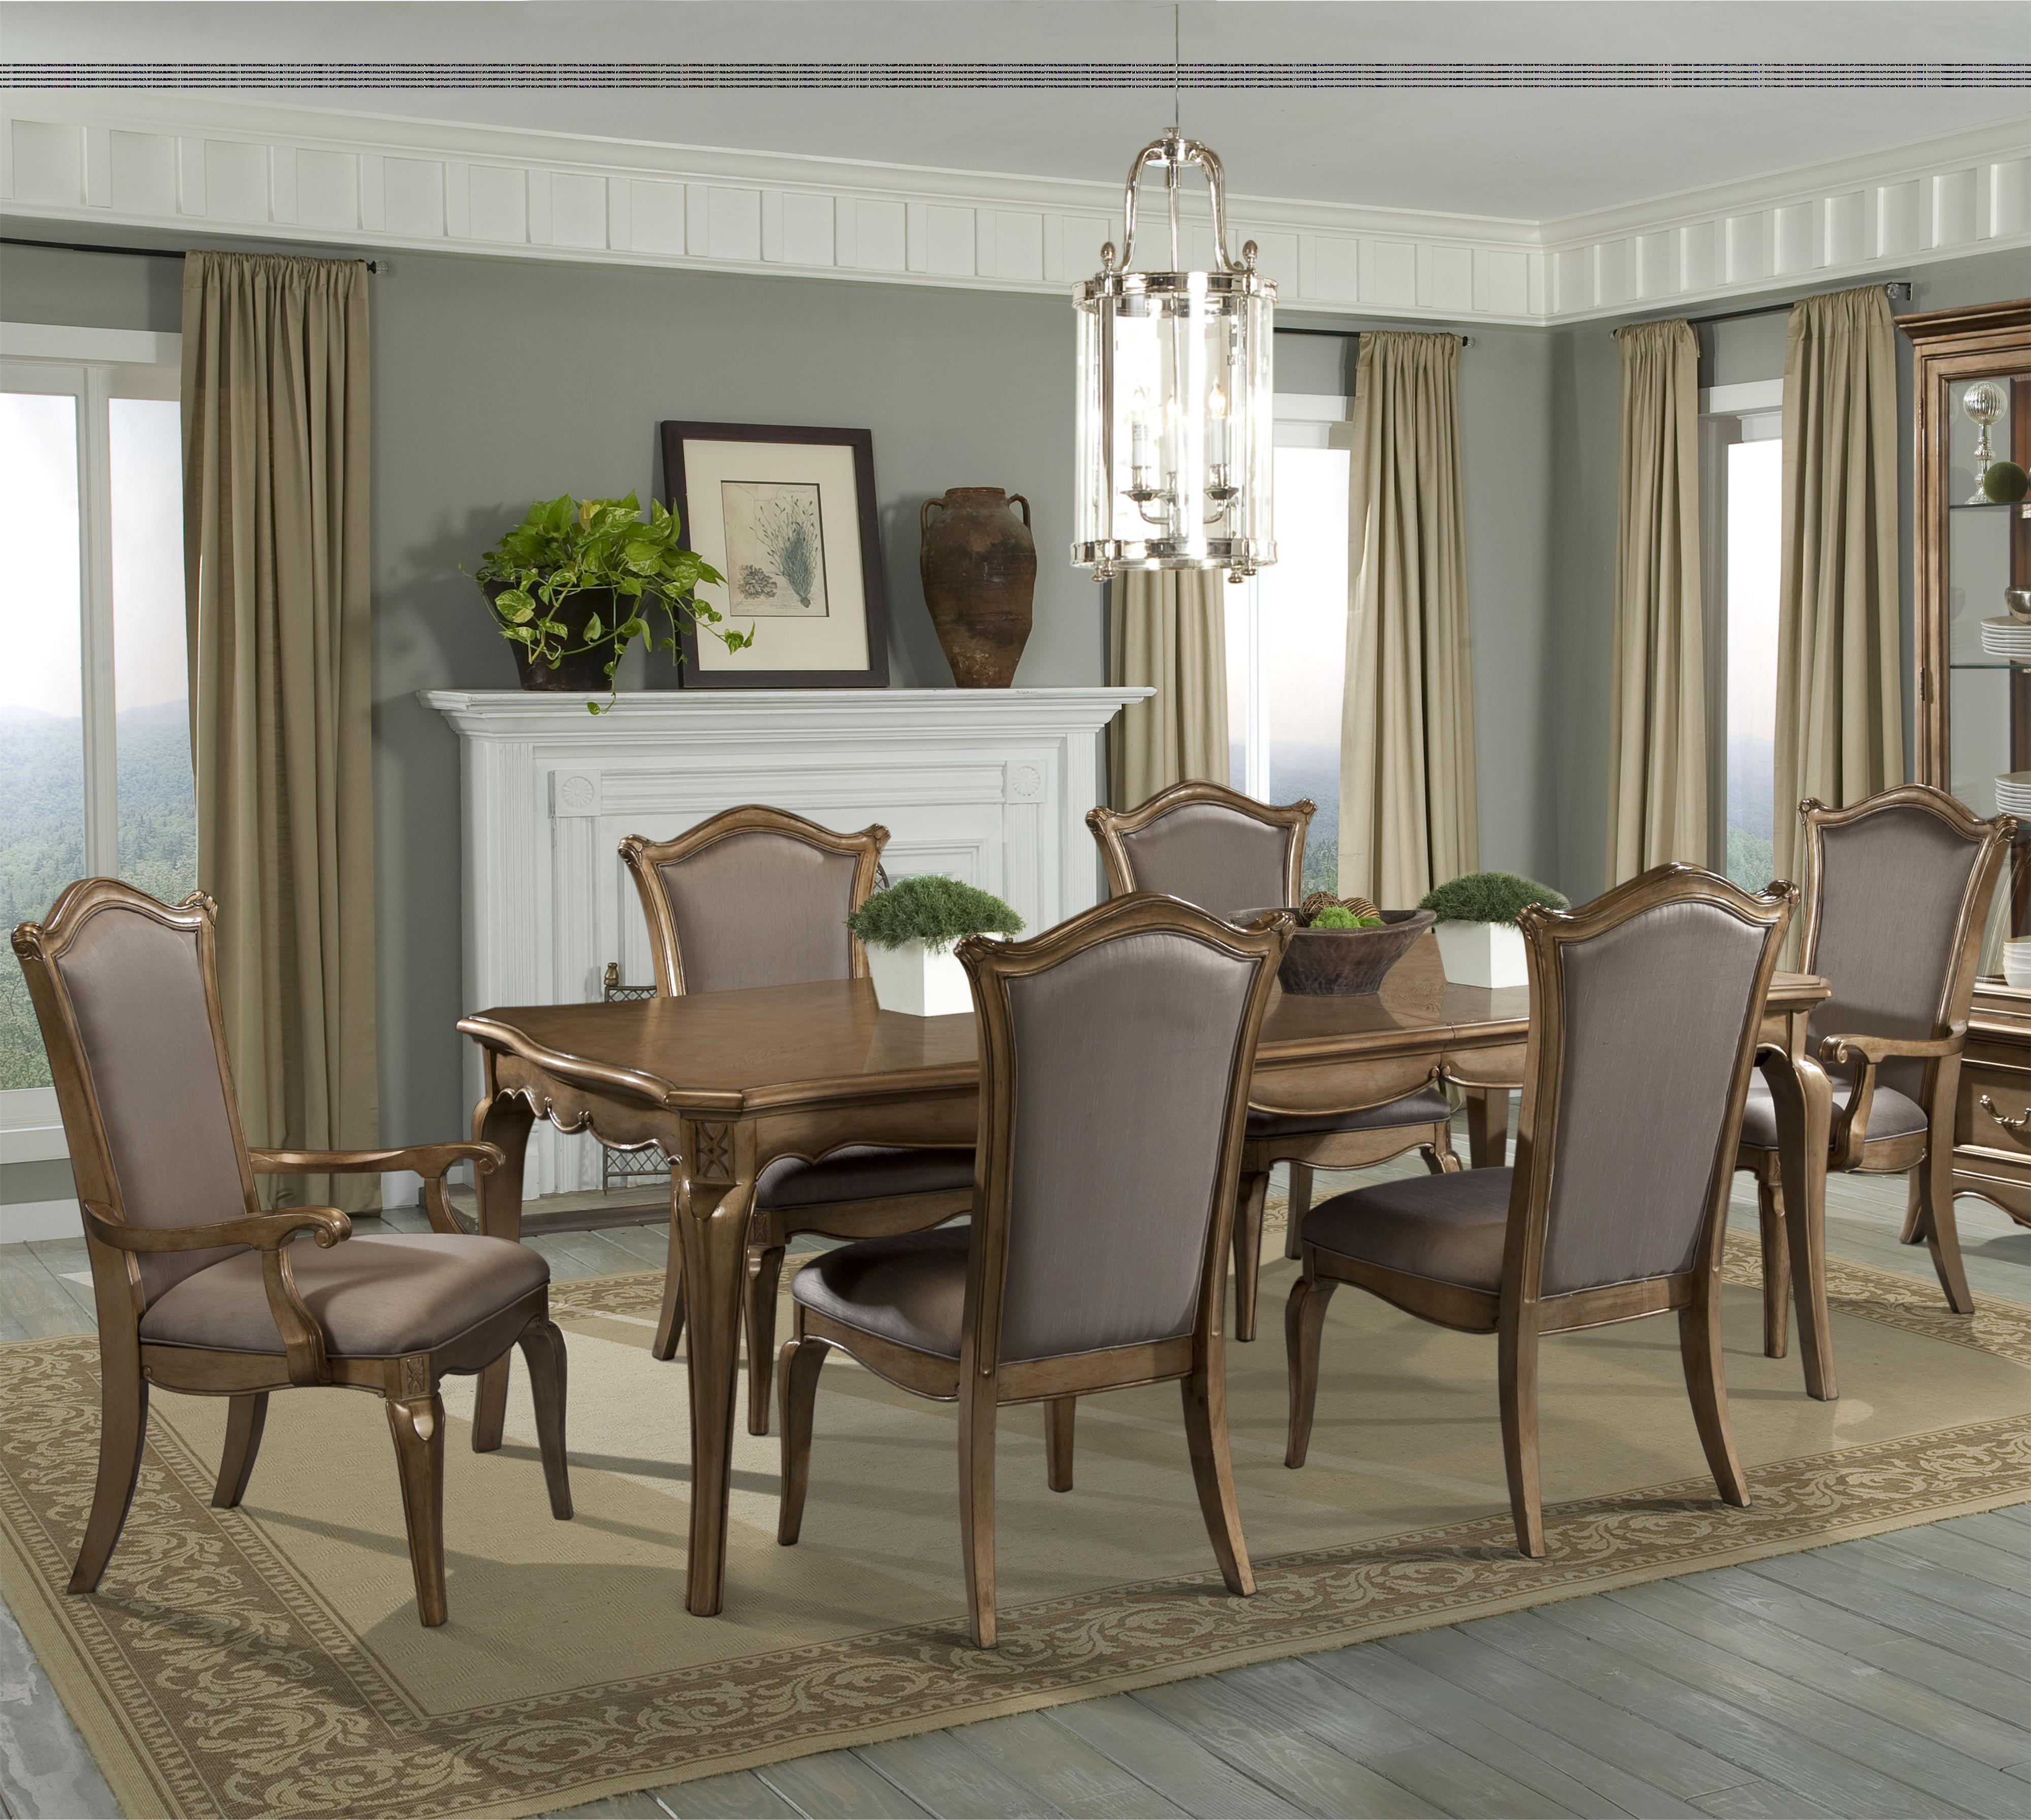 Homelegance Chambord 7 Piece Dining Set - Item Number: 1828-92+2x1828A+4x1828S